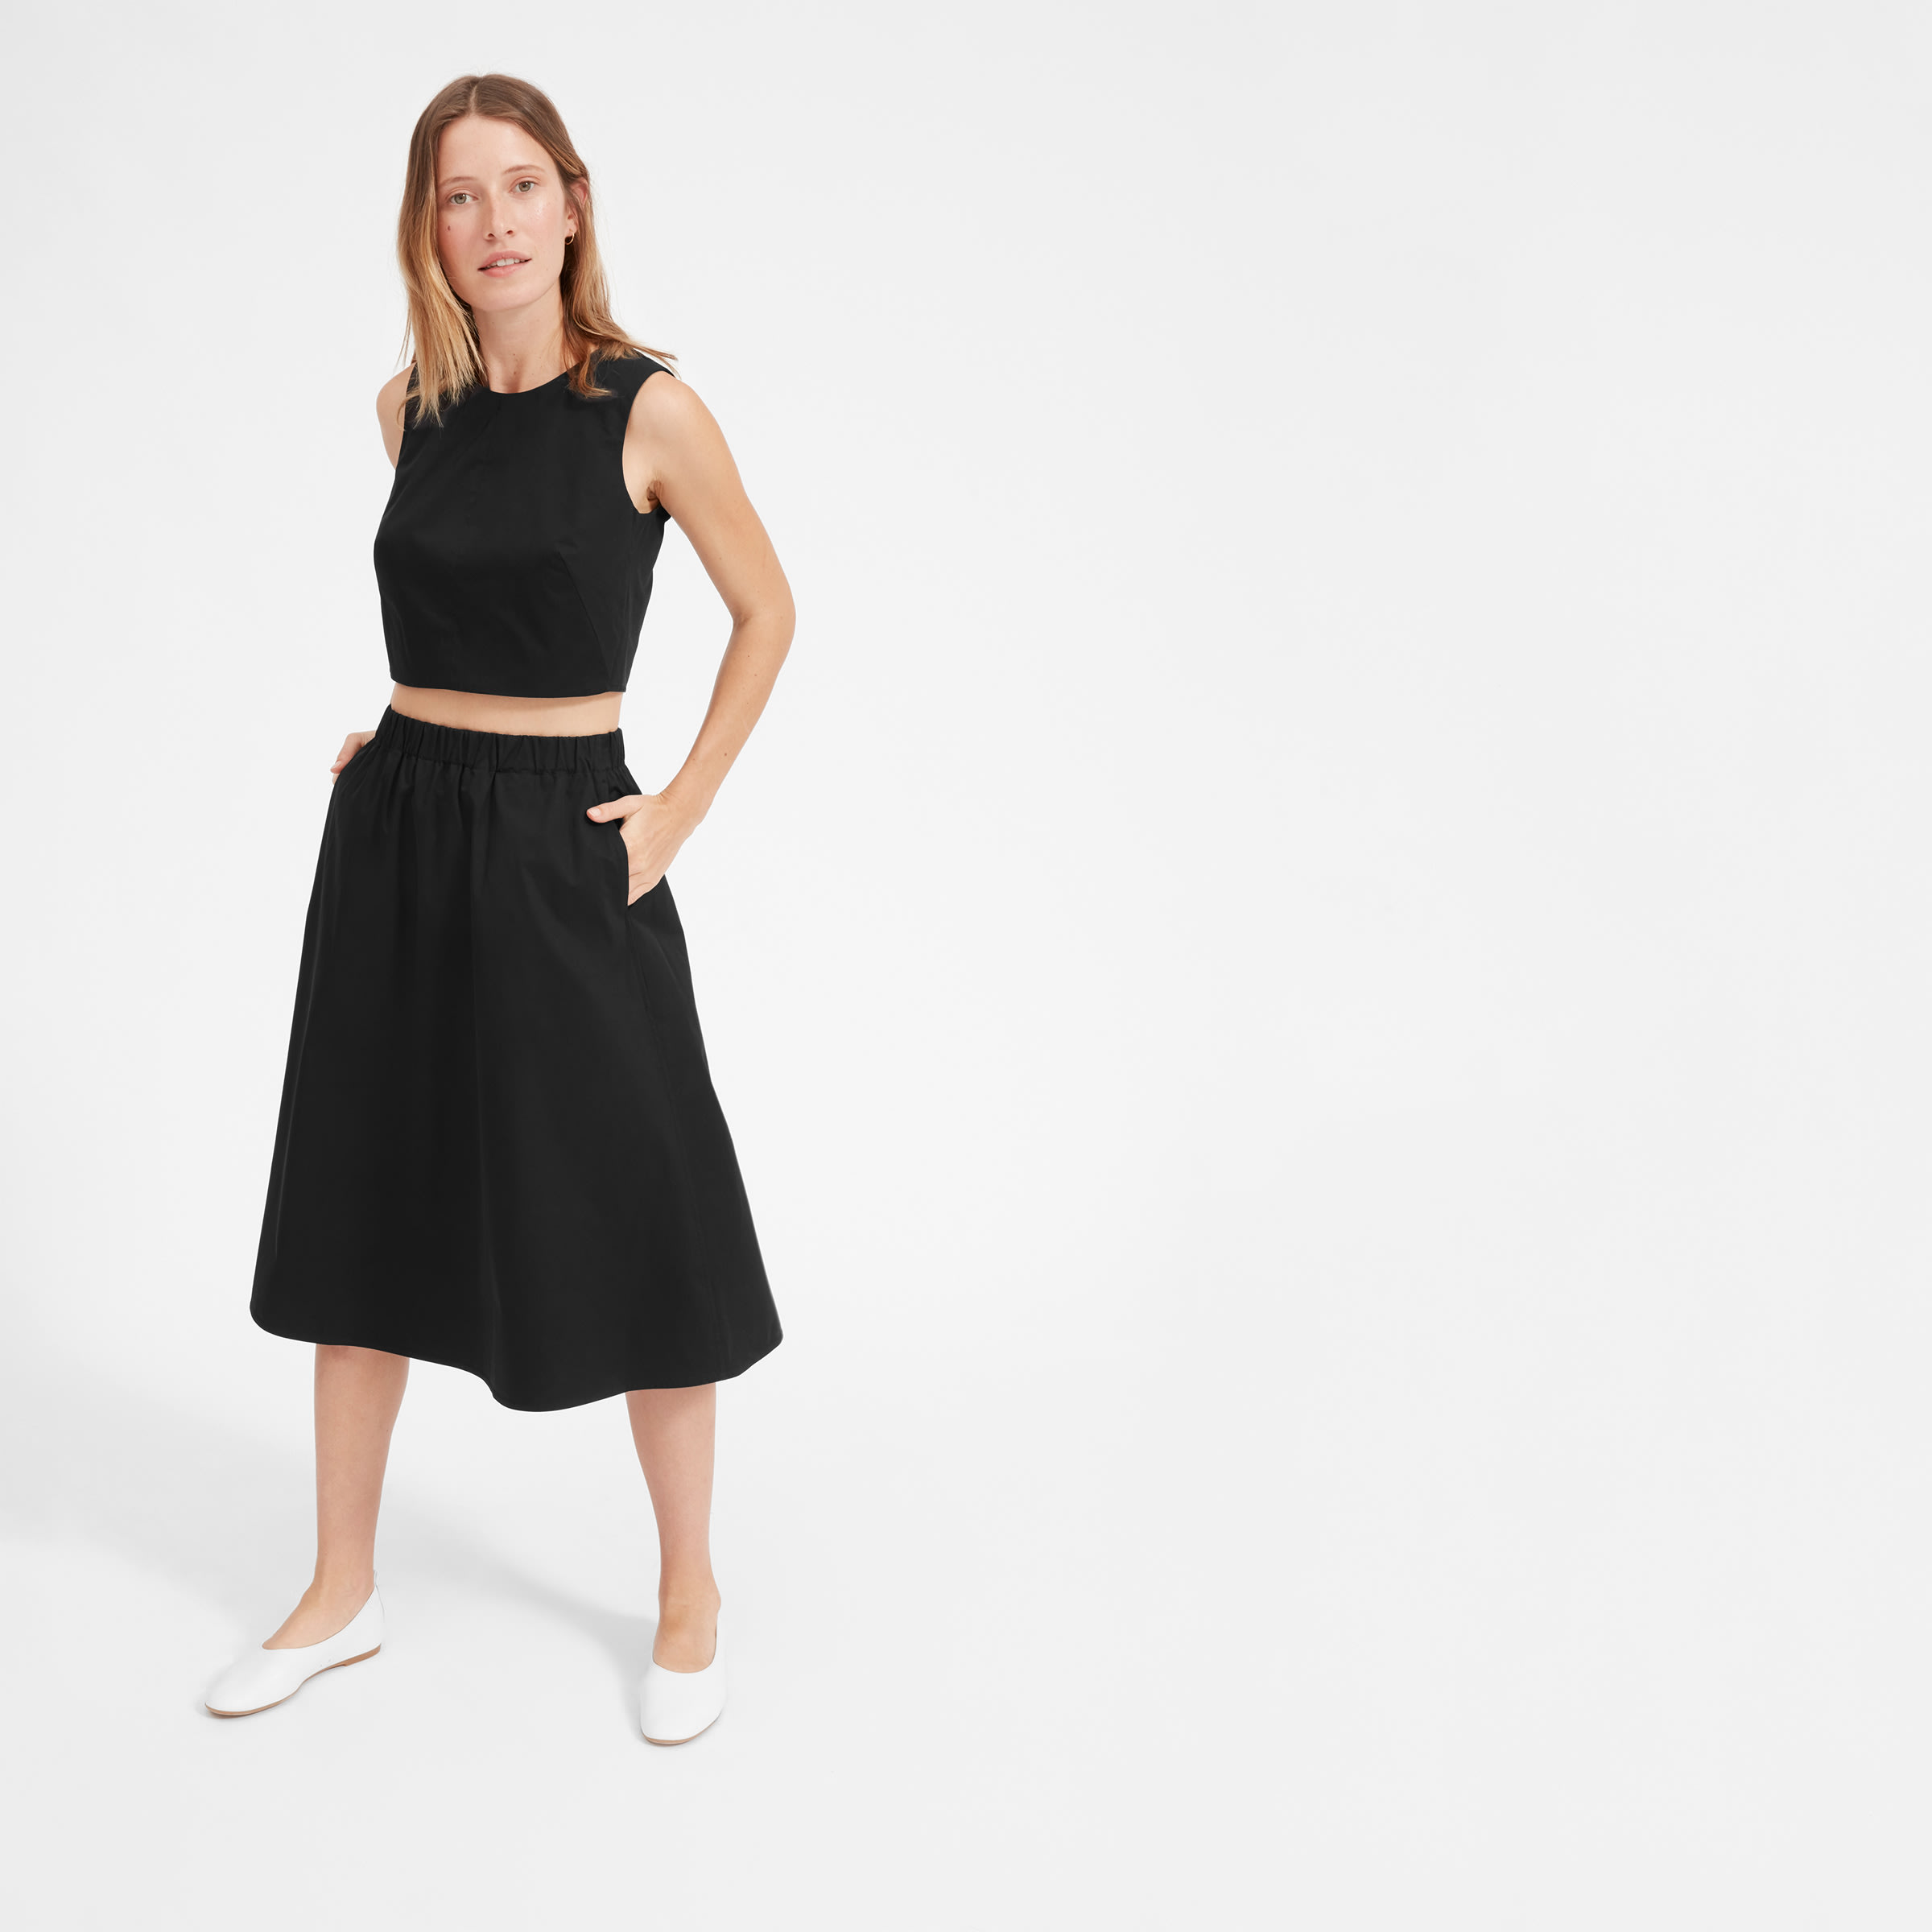 The Clean Cotton A Line Skirt by Everlane